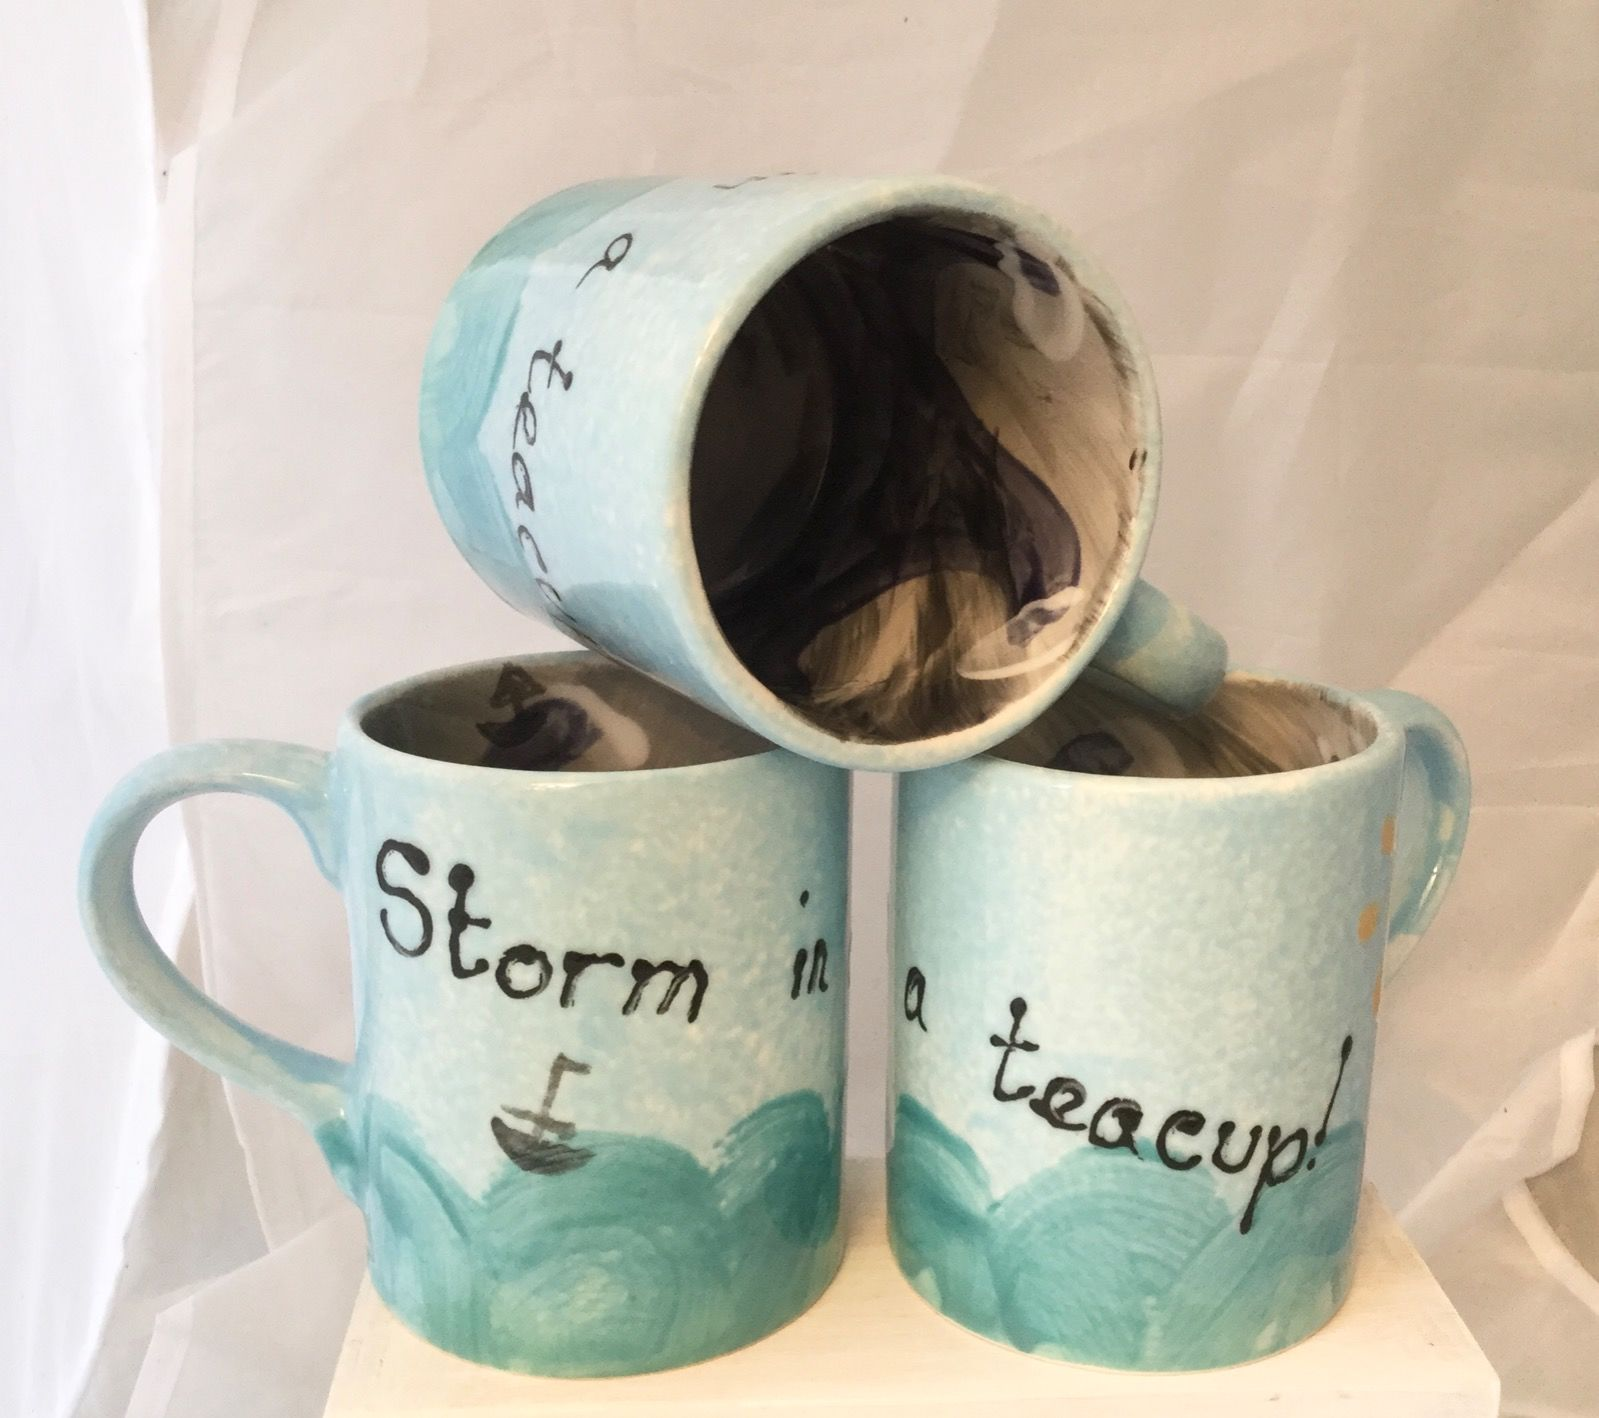 Storm in a tea cup, hand painted mug, height 10 cm